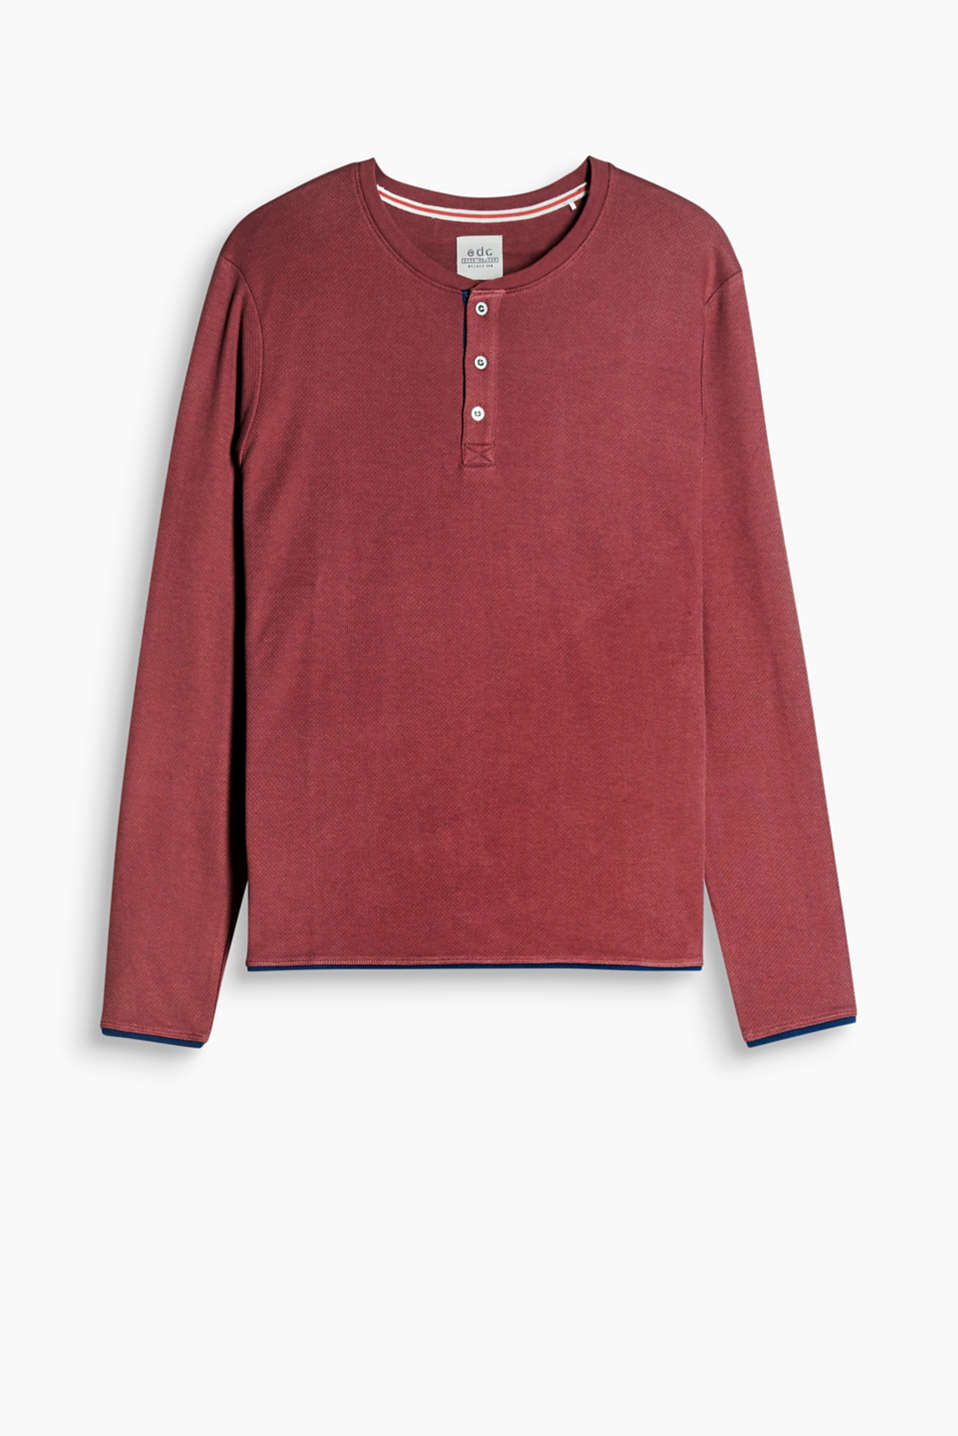 Henley-style long sleeve top with a fine texture and a layered effect, 100% cotton